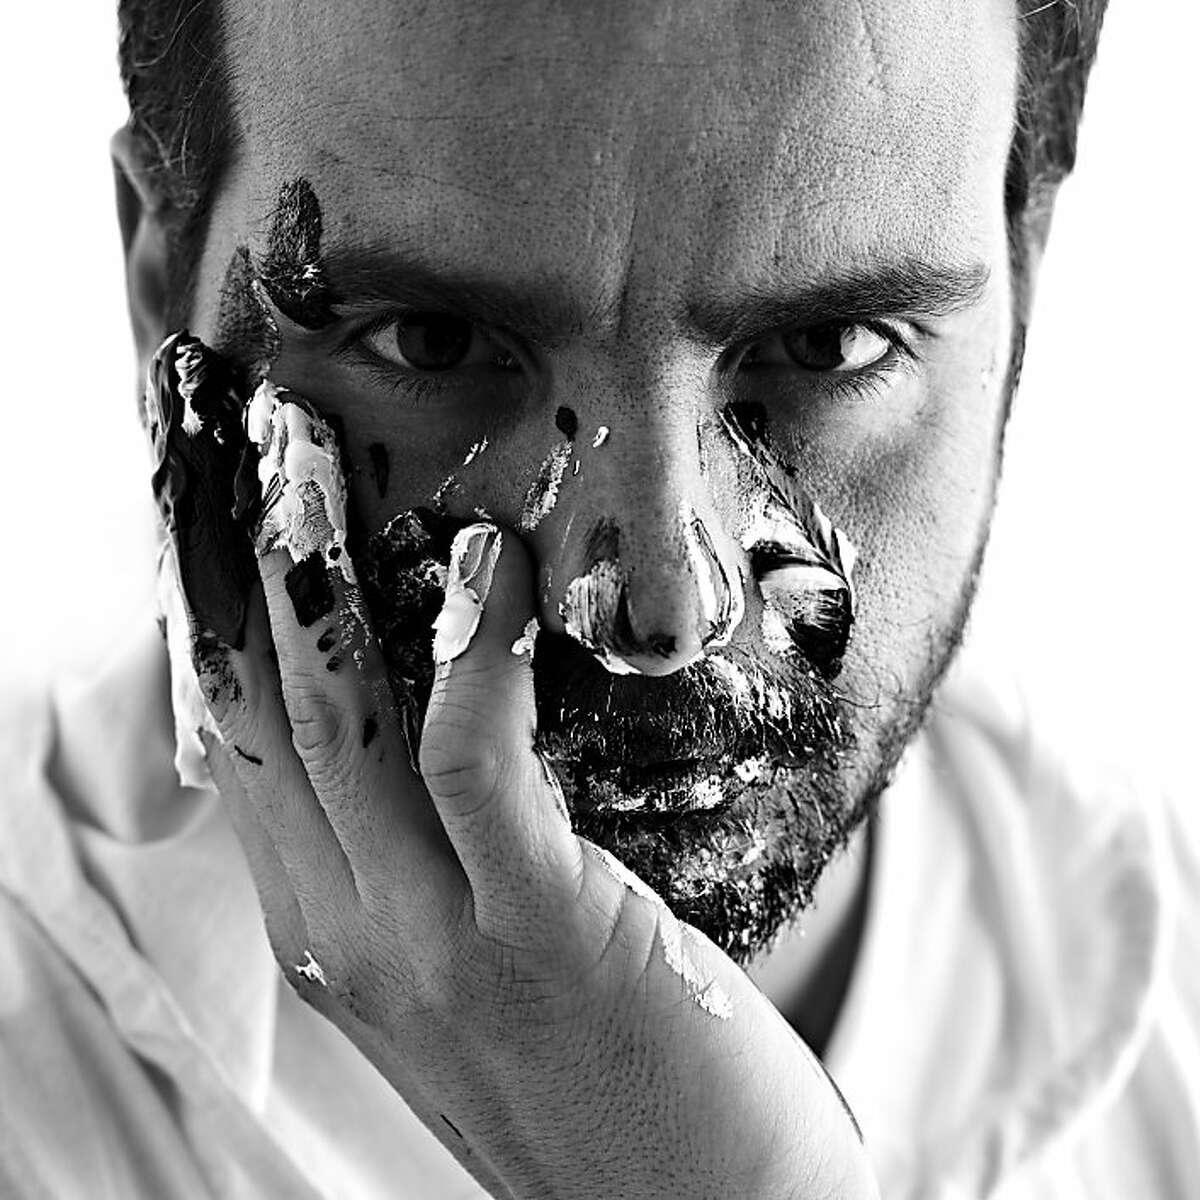 Italian painter Paolo Troilo paints his self-portraits by hand.